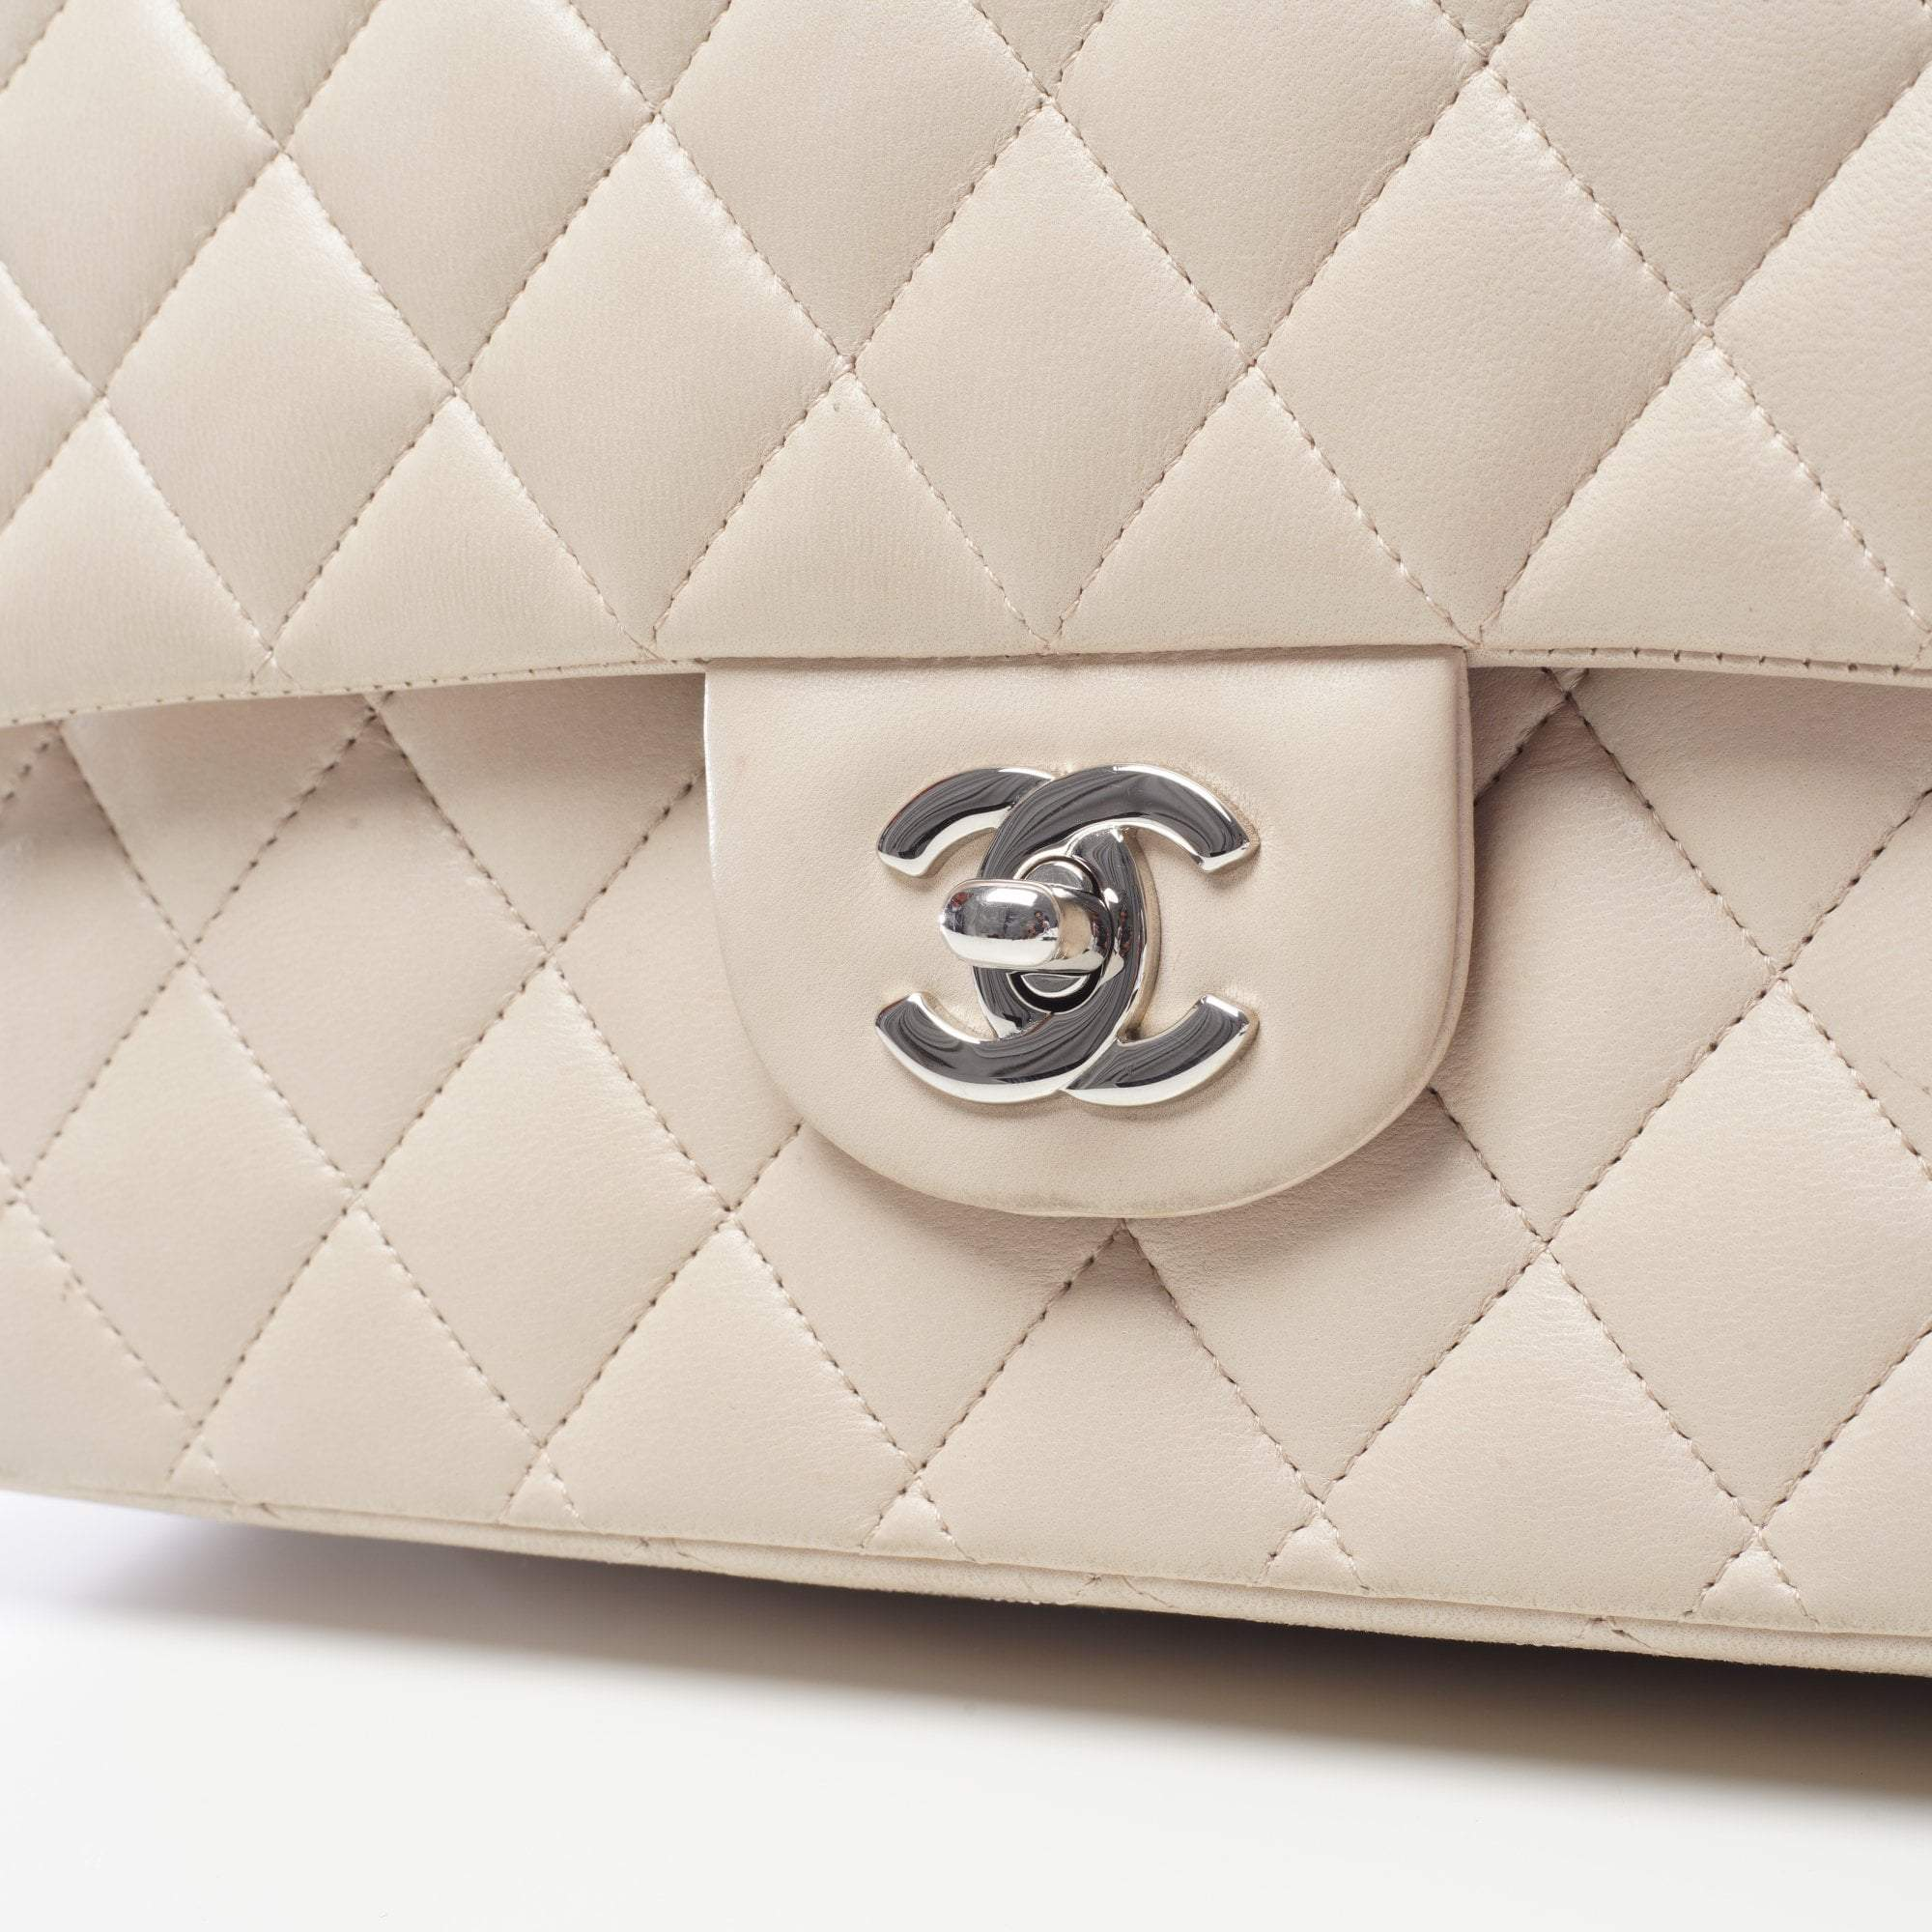 Chanel Beige Quilted Medium Double Flap Bag